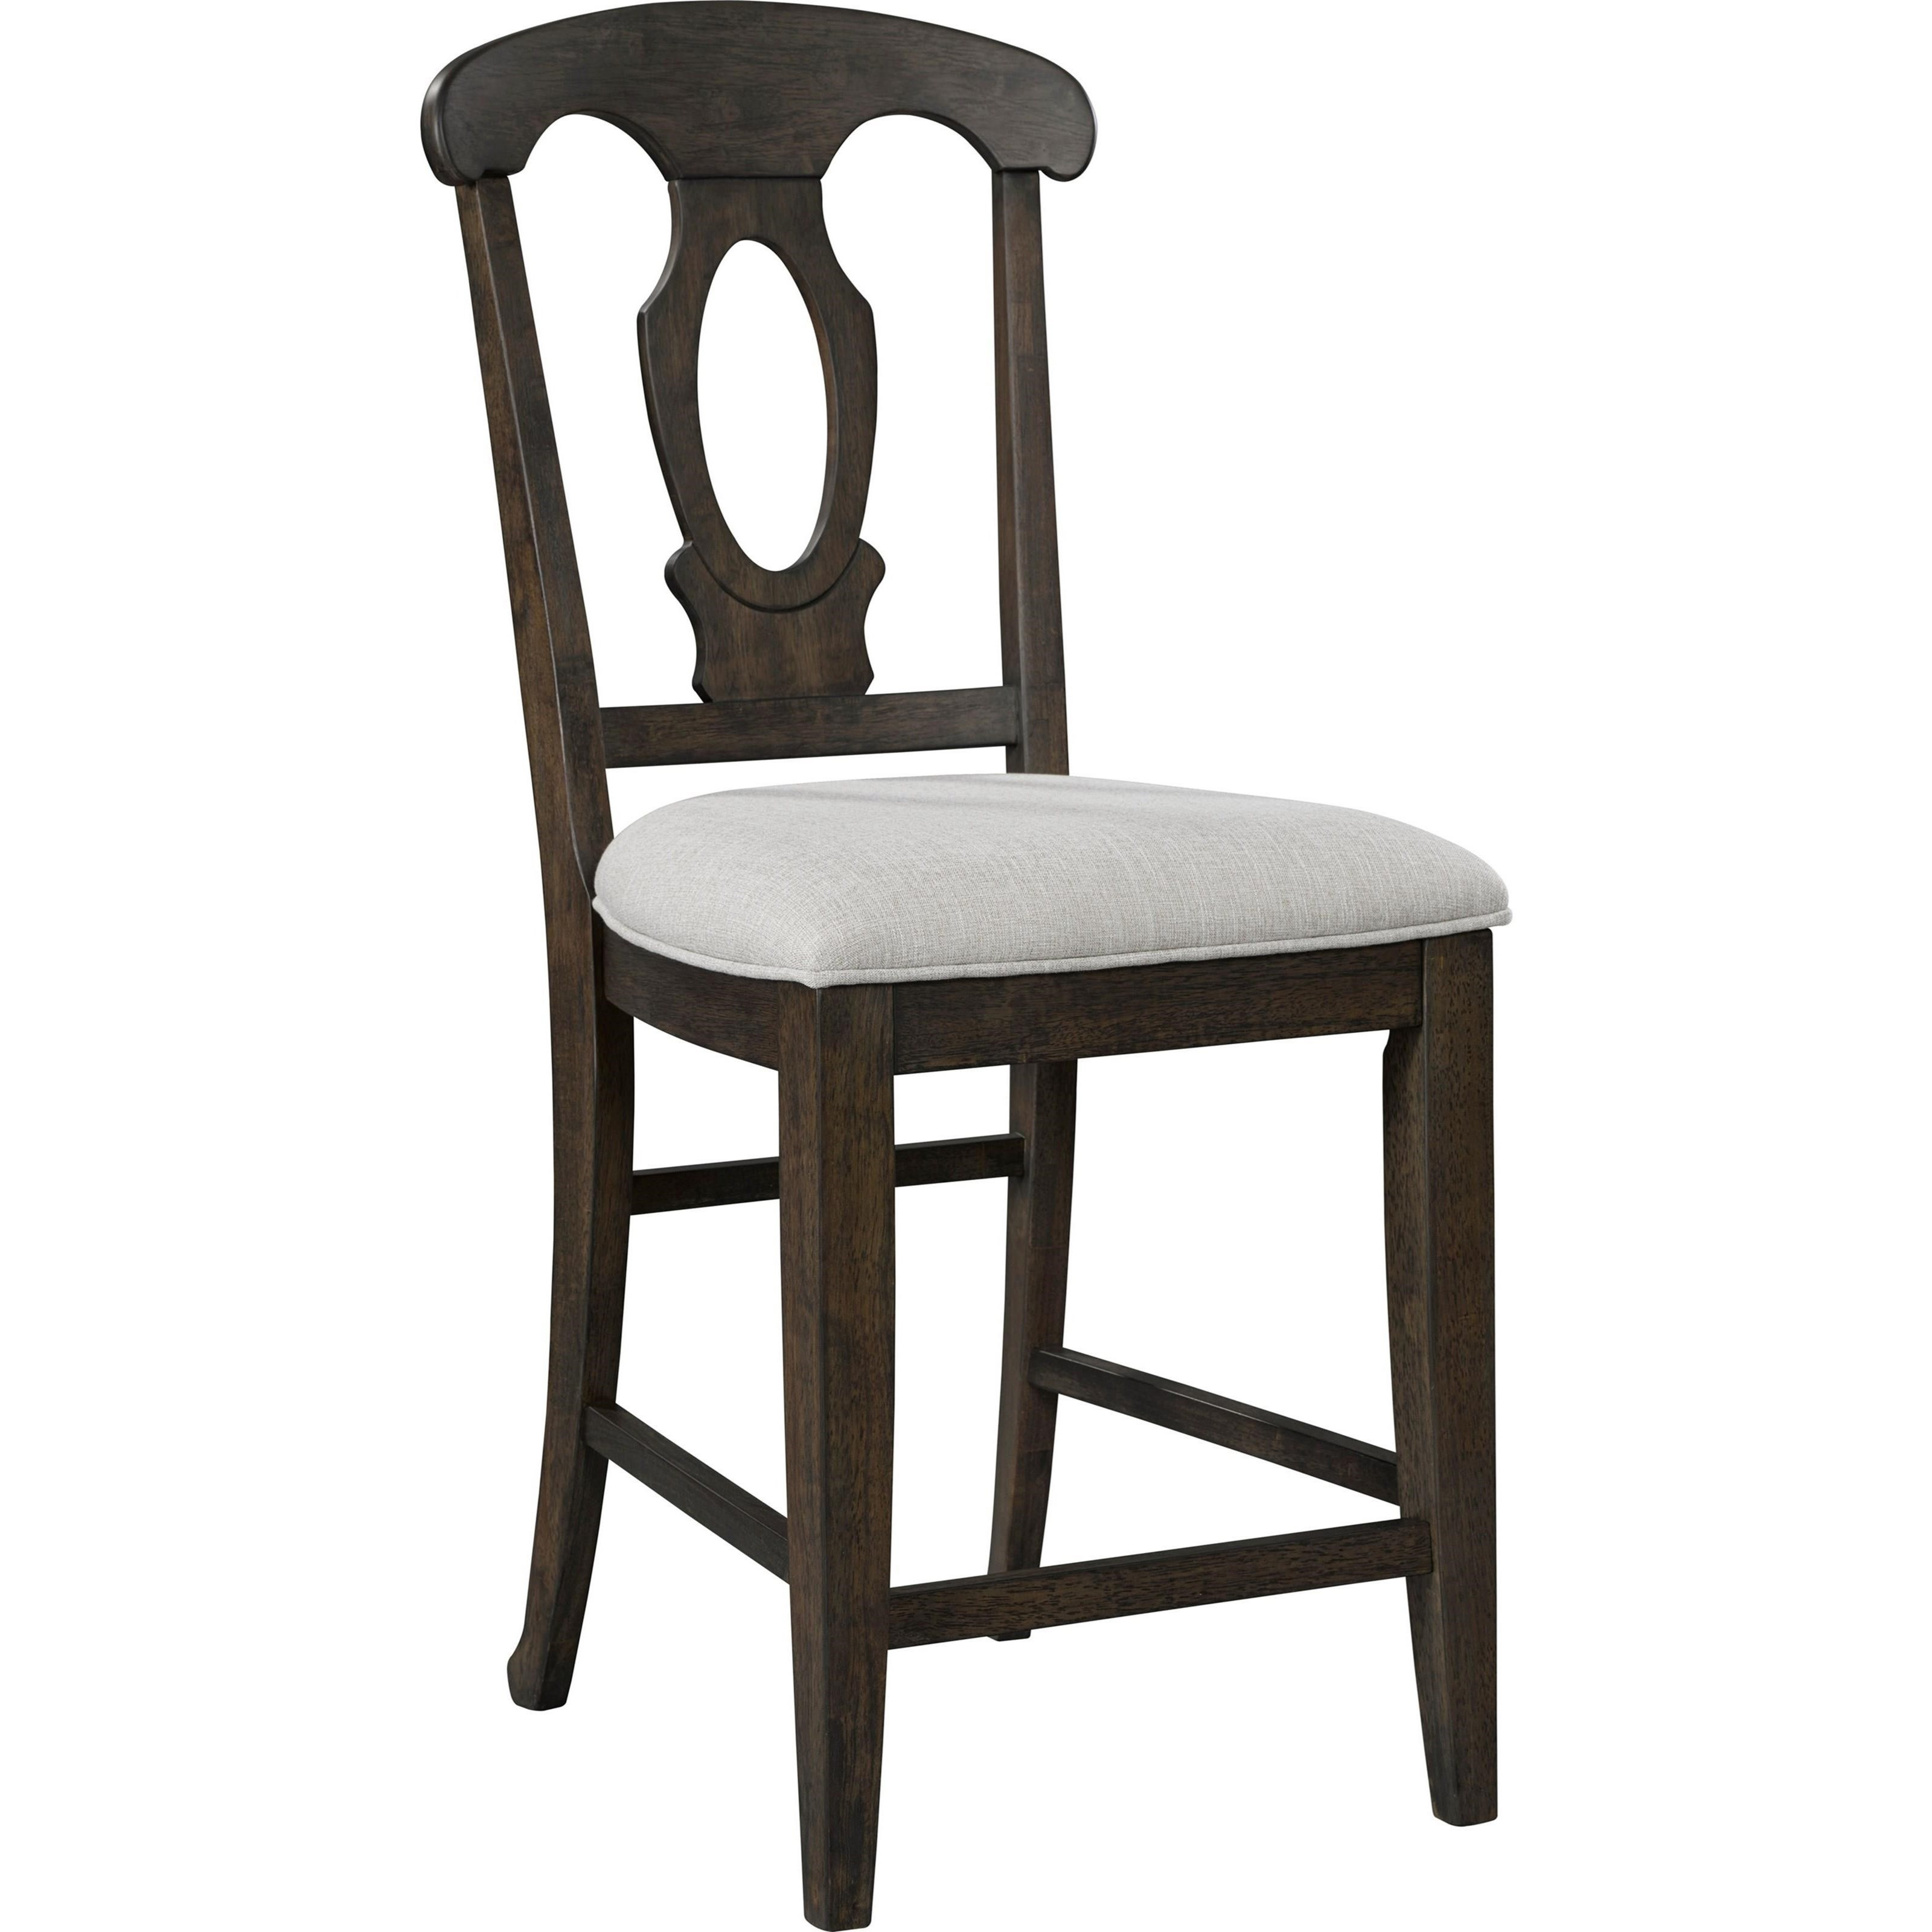 Broyhill Furniture Ashgrove Upholstered Seat Counter Stool - Item Number: 4547-591NUT